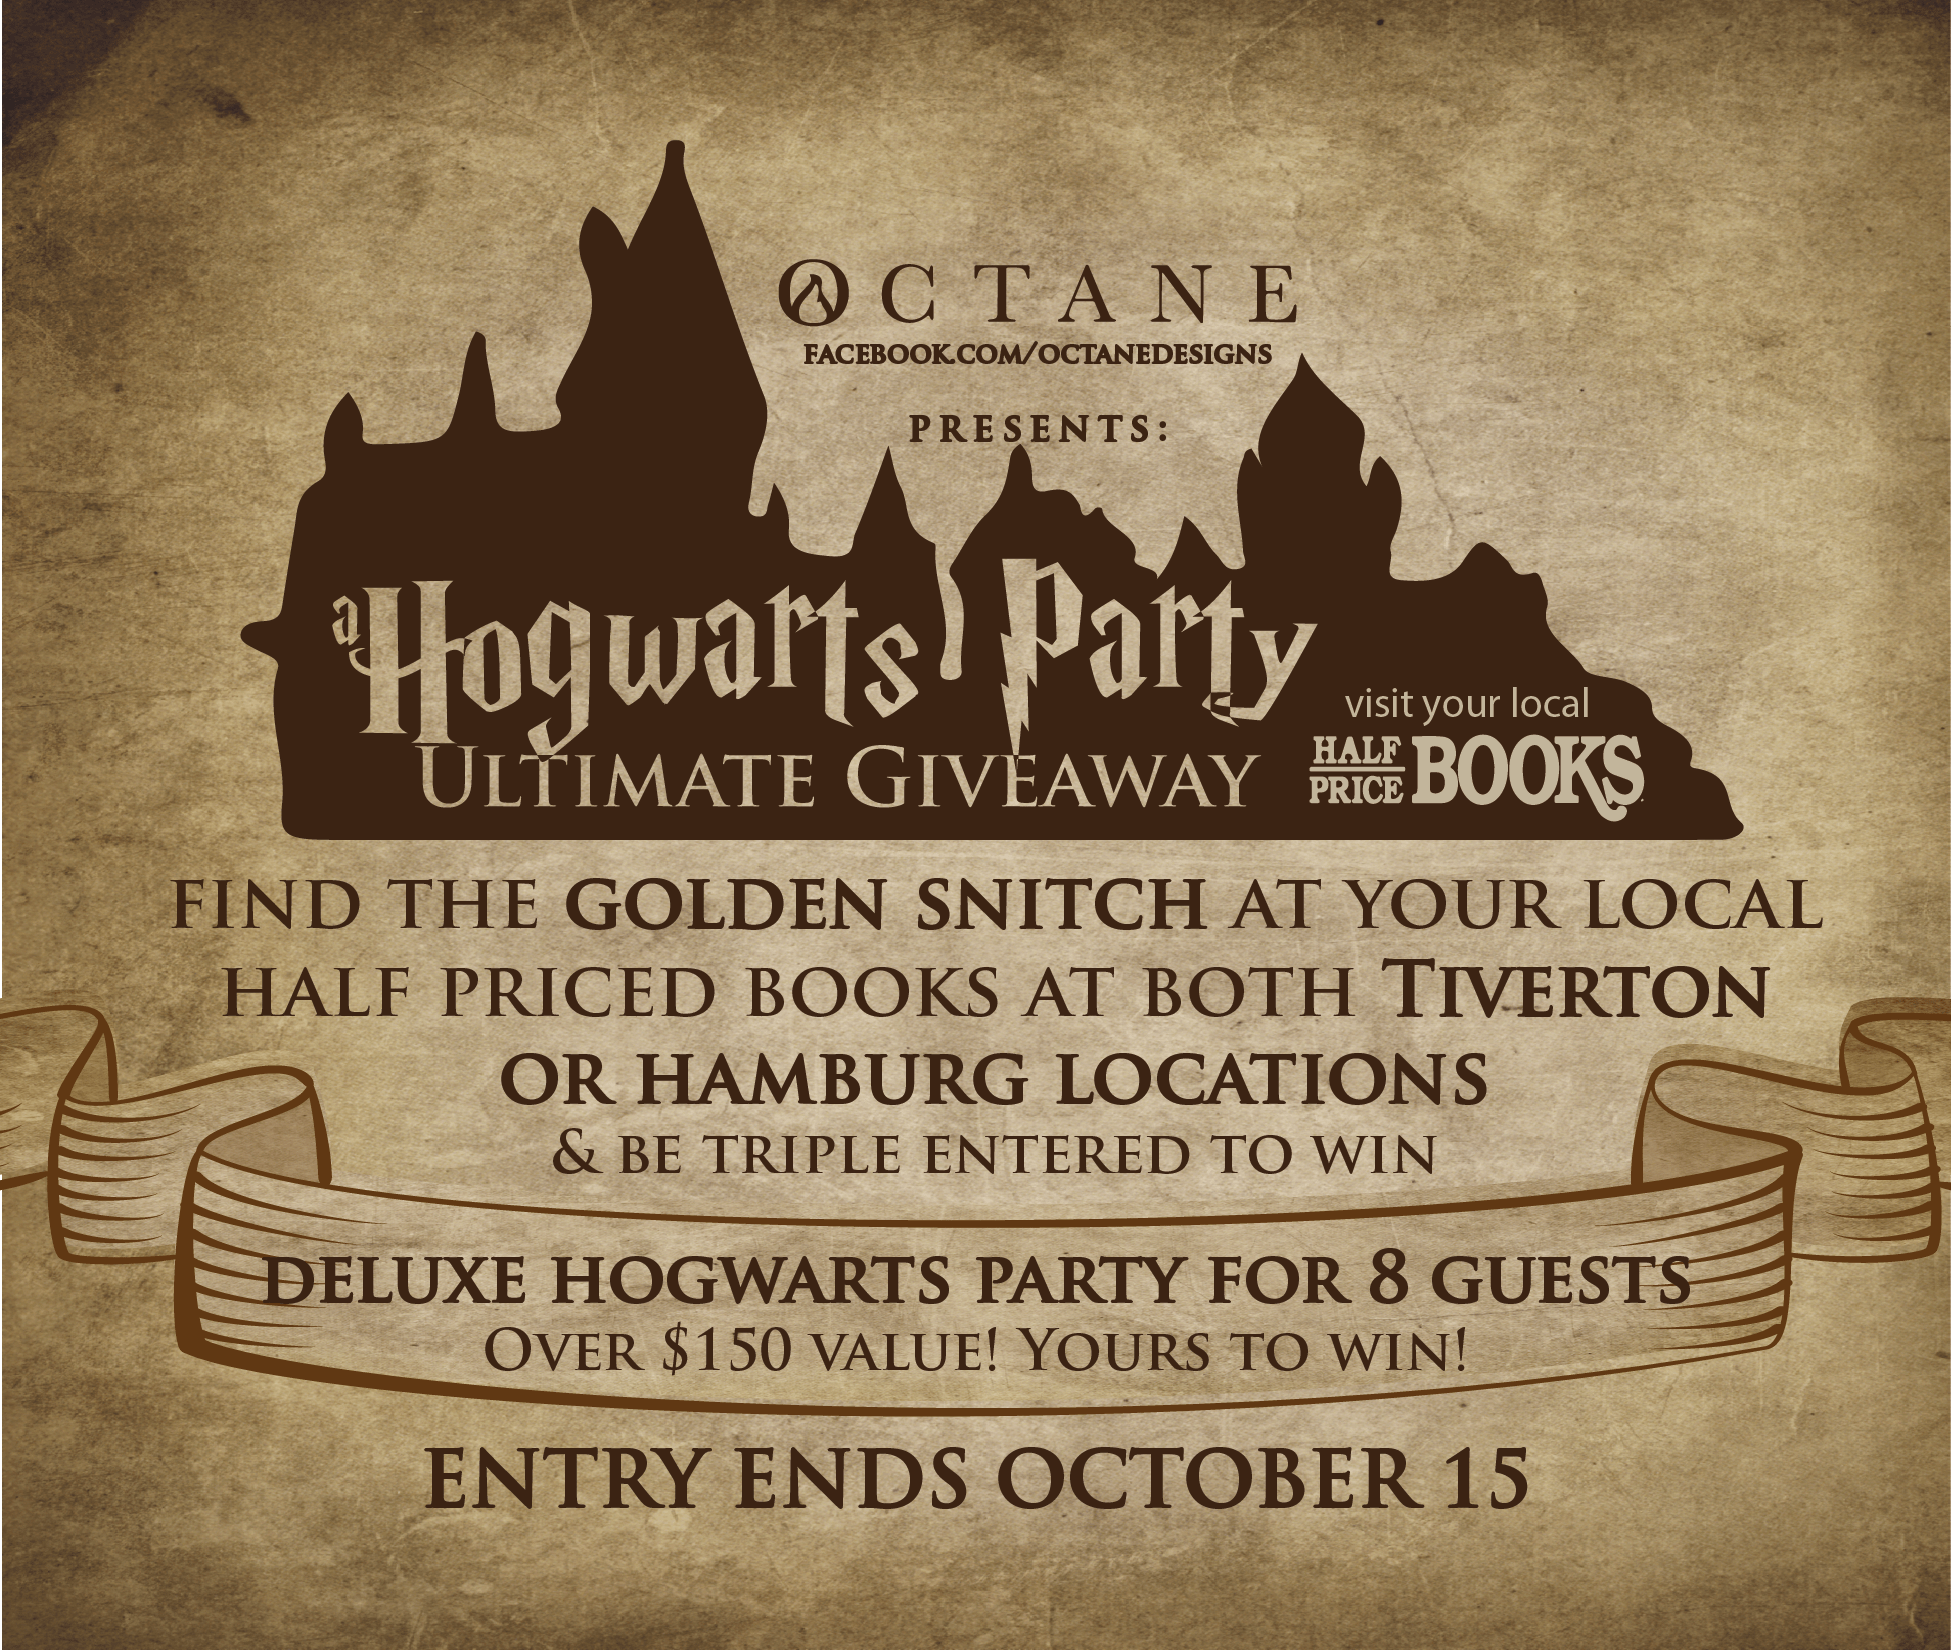 Octane partners with Half-Priced Books for A Hogwarts Party Ultimate Giveaway